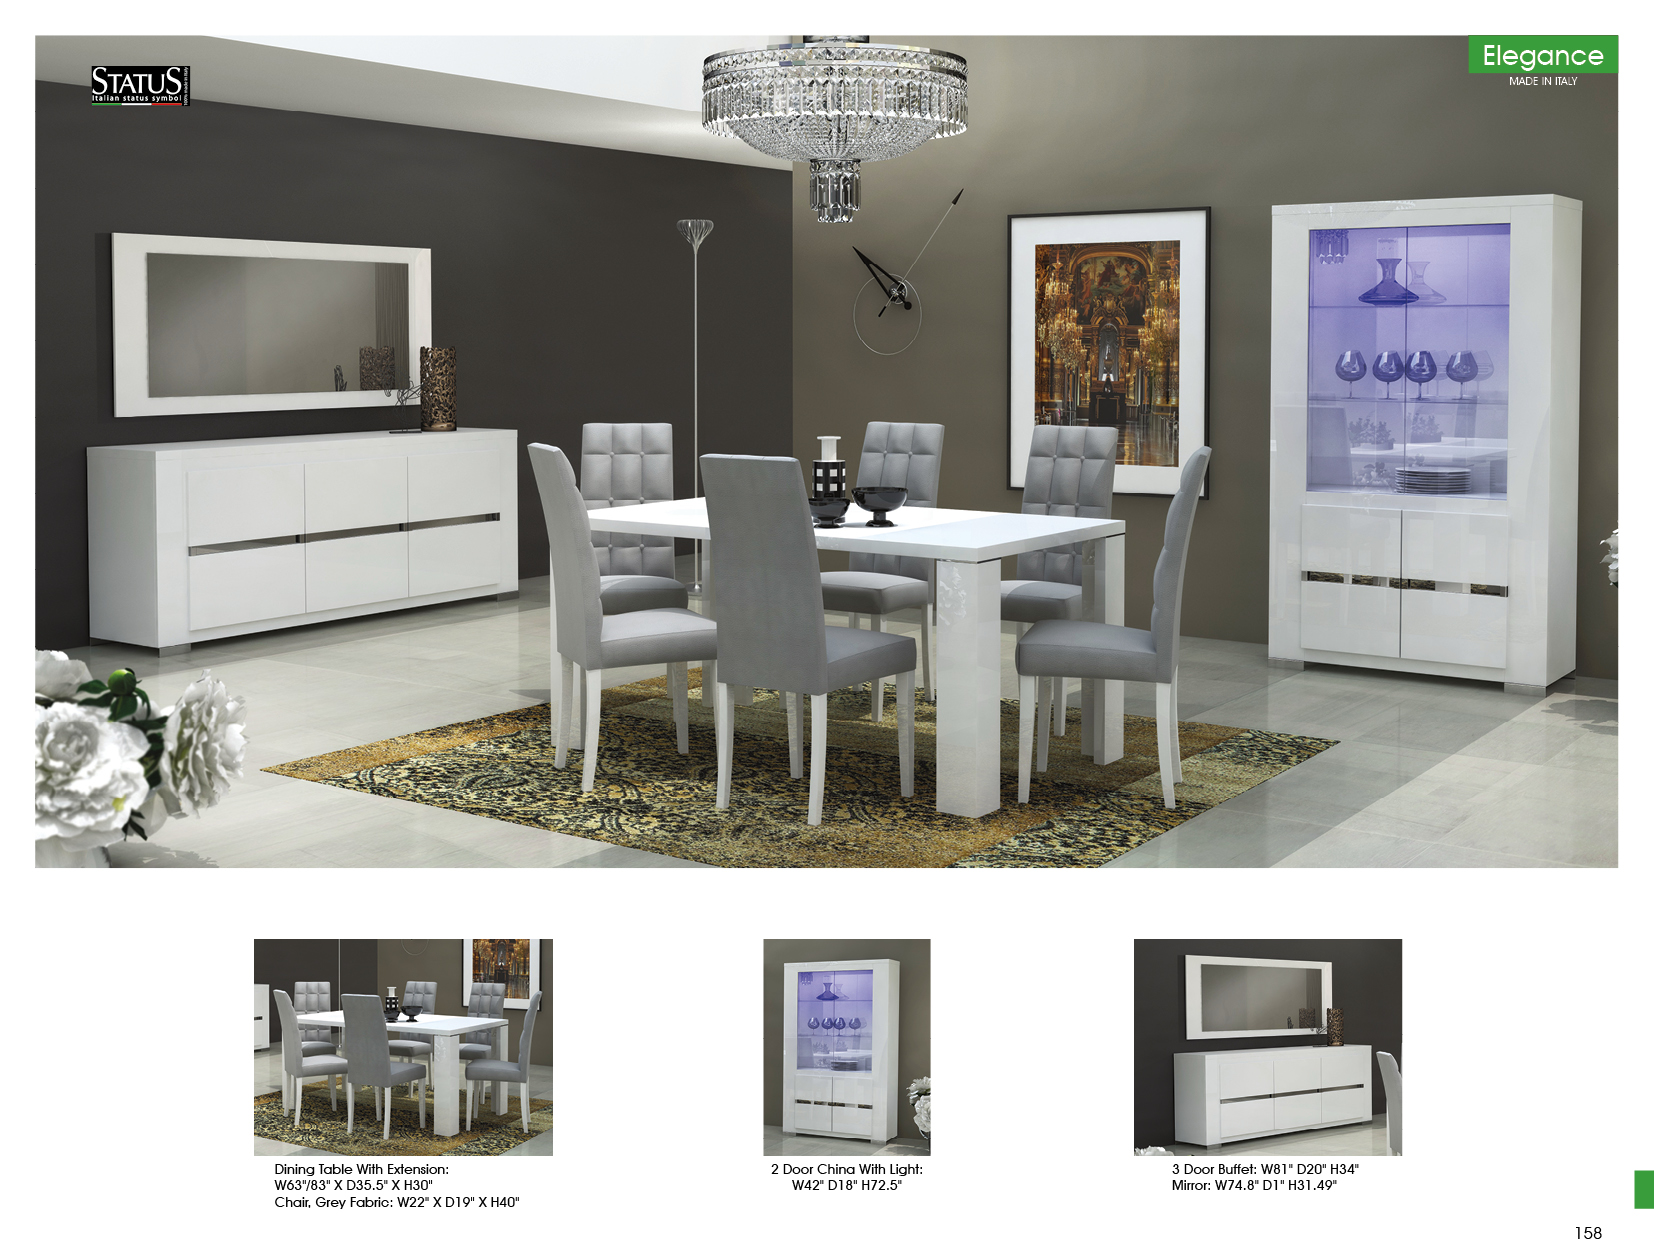 Elegance Dining Room Modern, Modern Dining Room Sets With Buffet